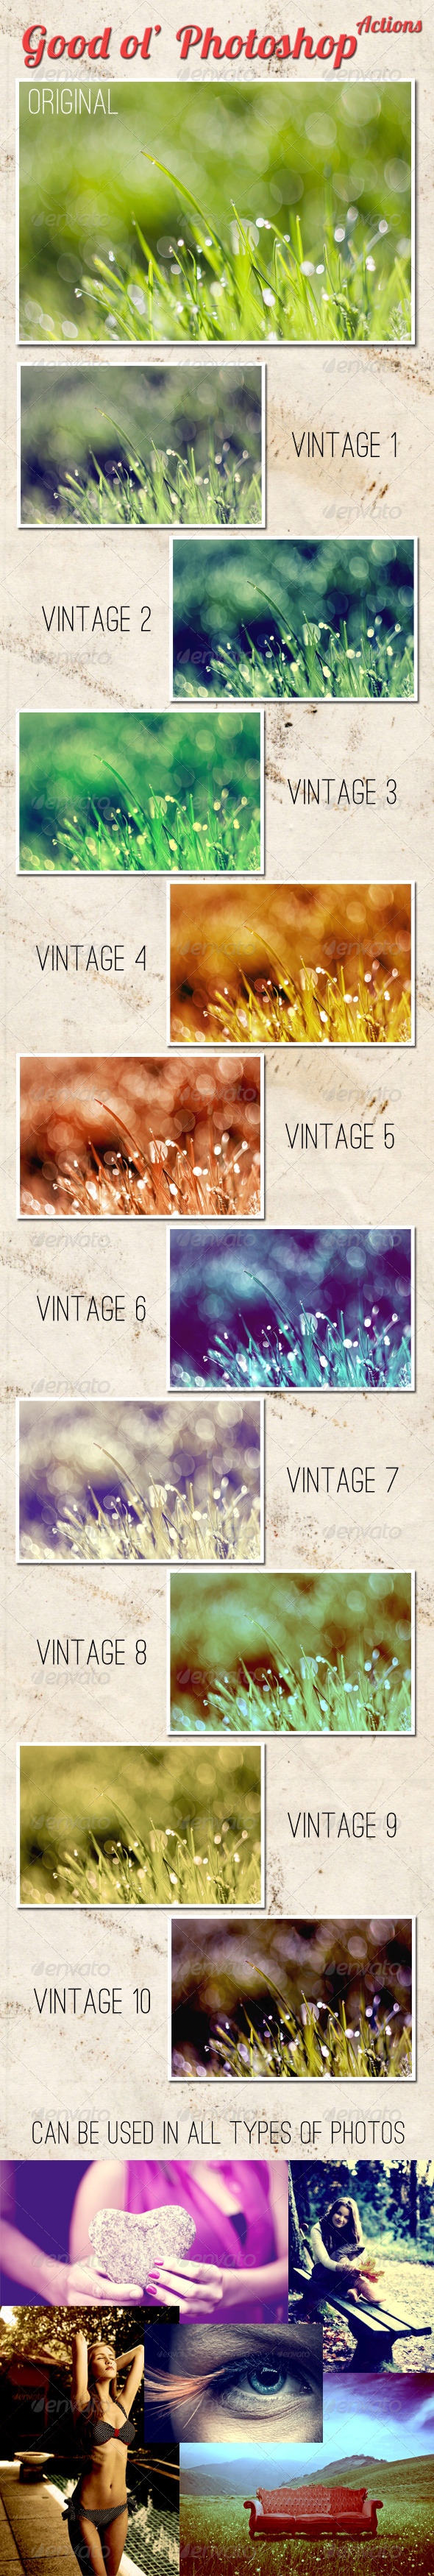 GraphicRiver Good ol Photoshop Actions 5198107